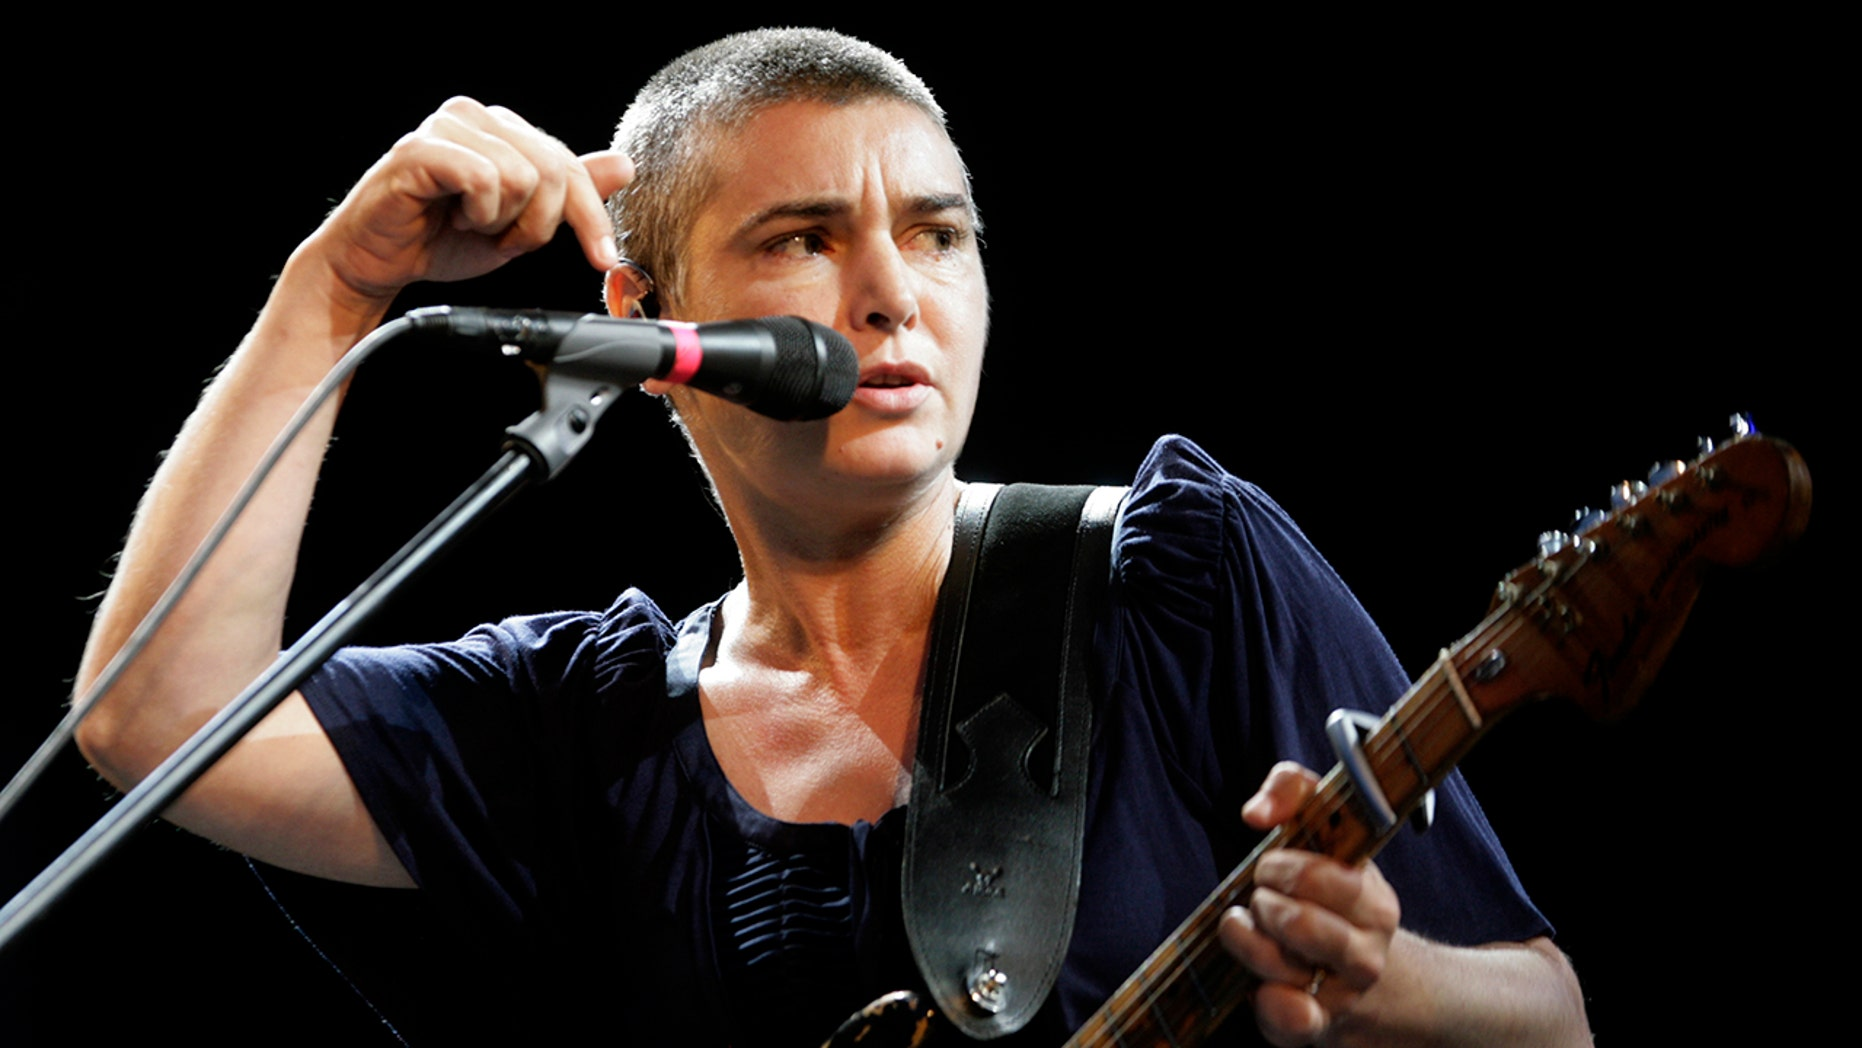 Sinéad O'Connor never wants to associate with 'disgusting' white people again